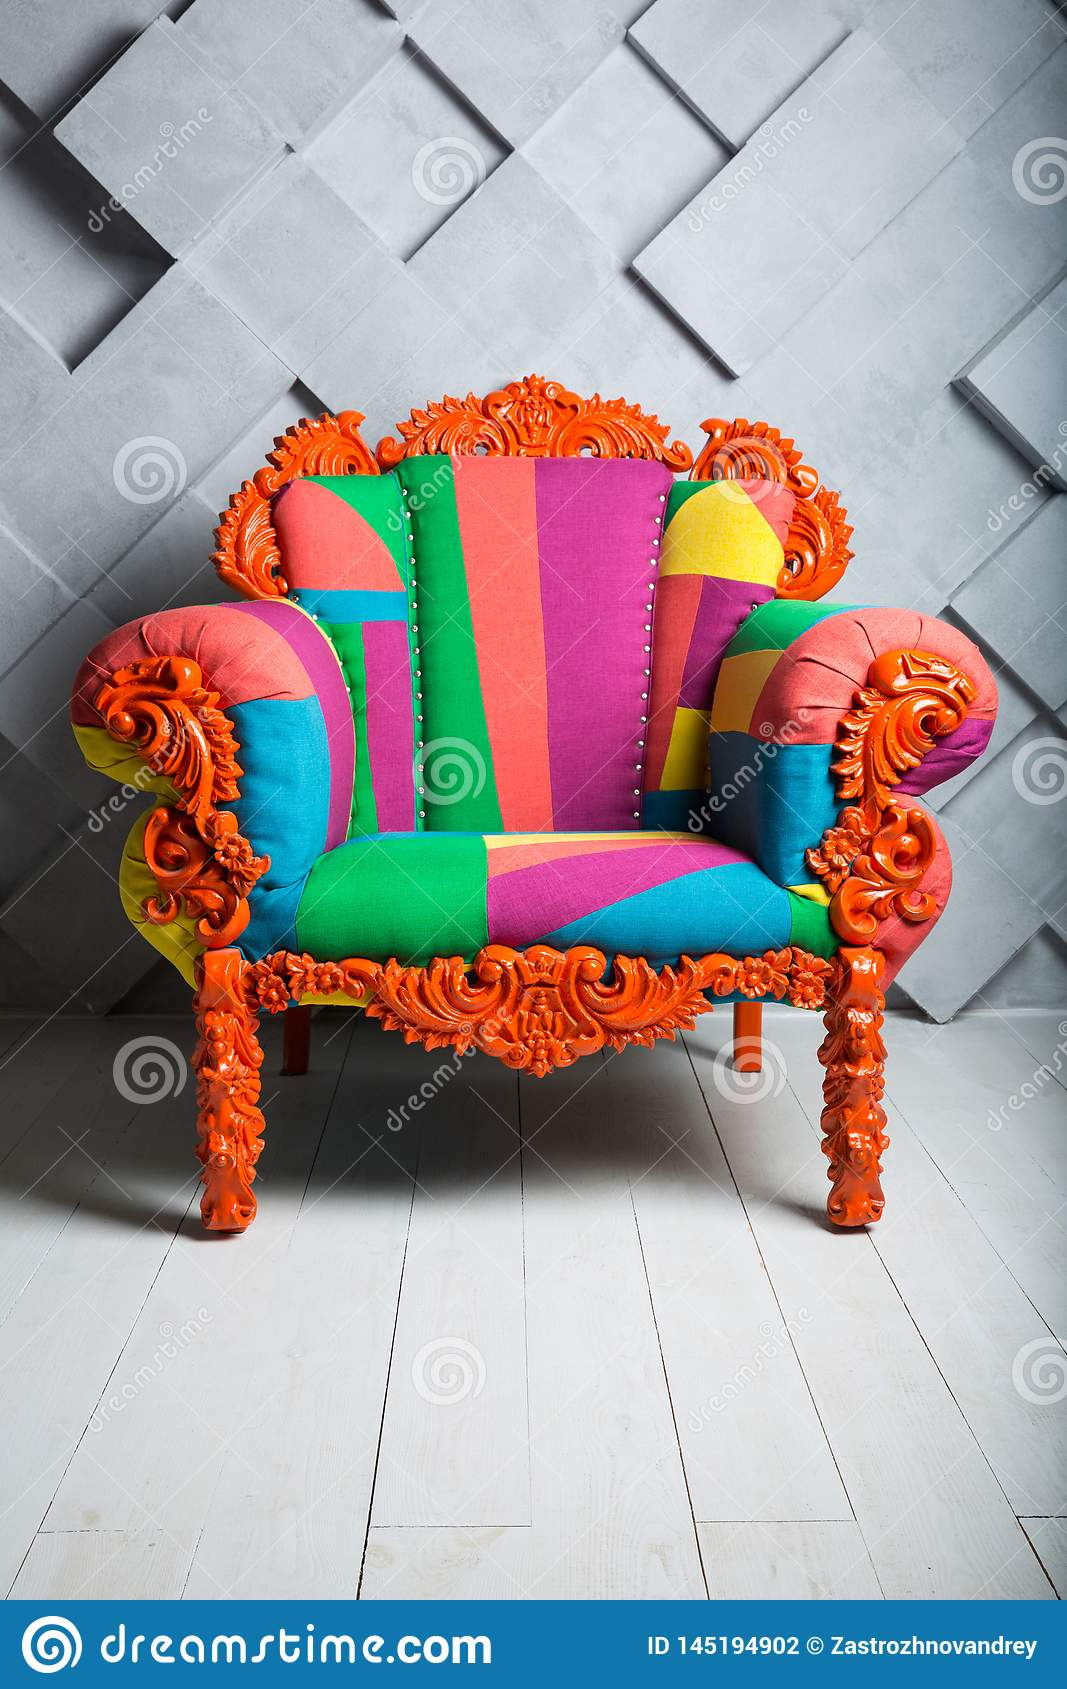 Concept of luxury and success with multi colored velvet armchair, boss place